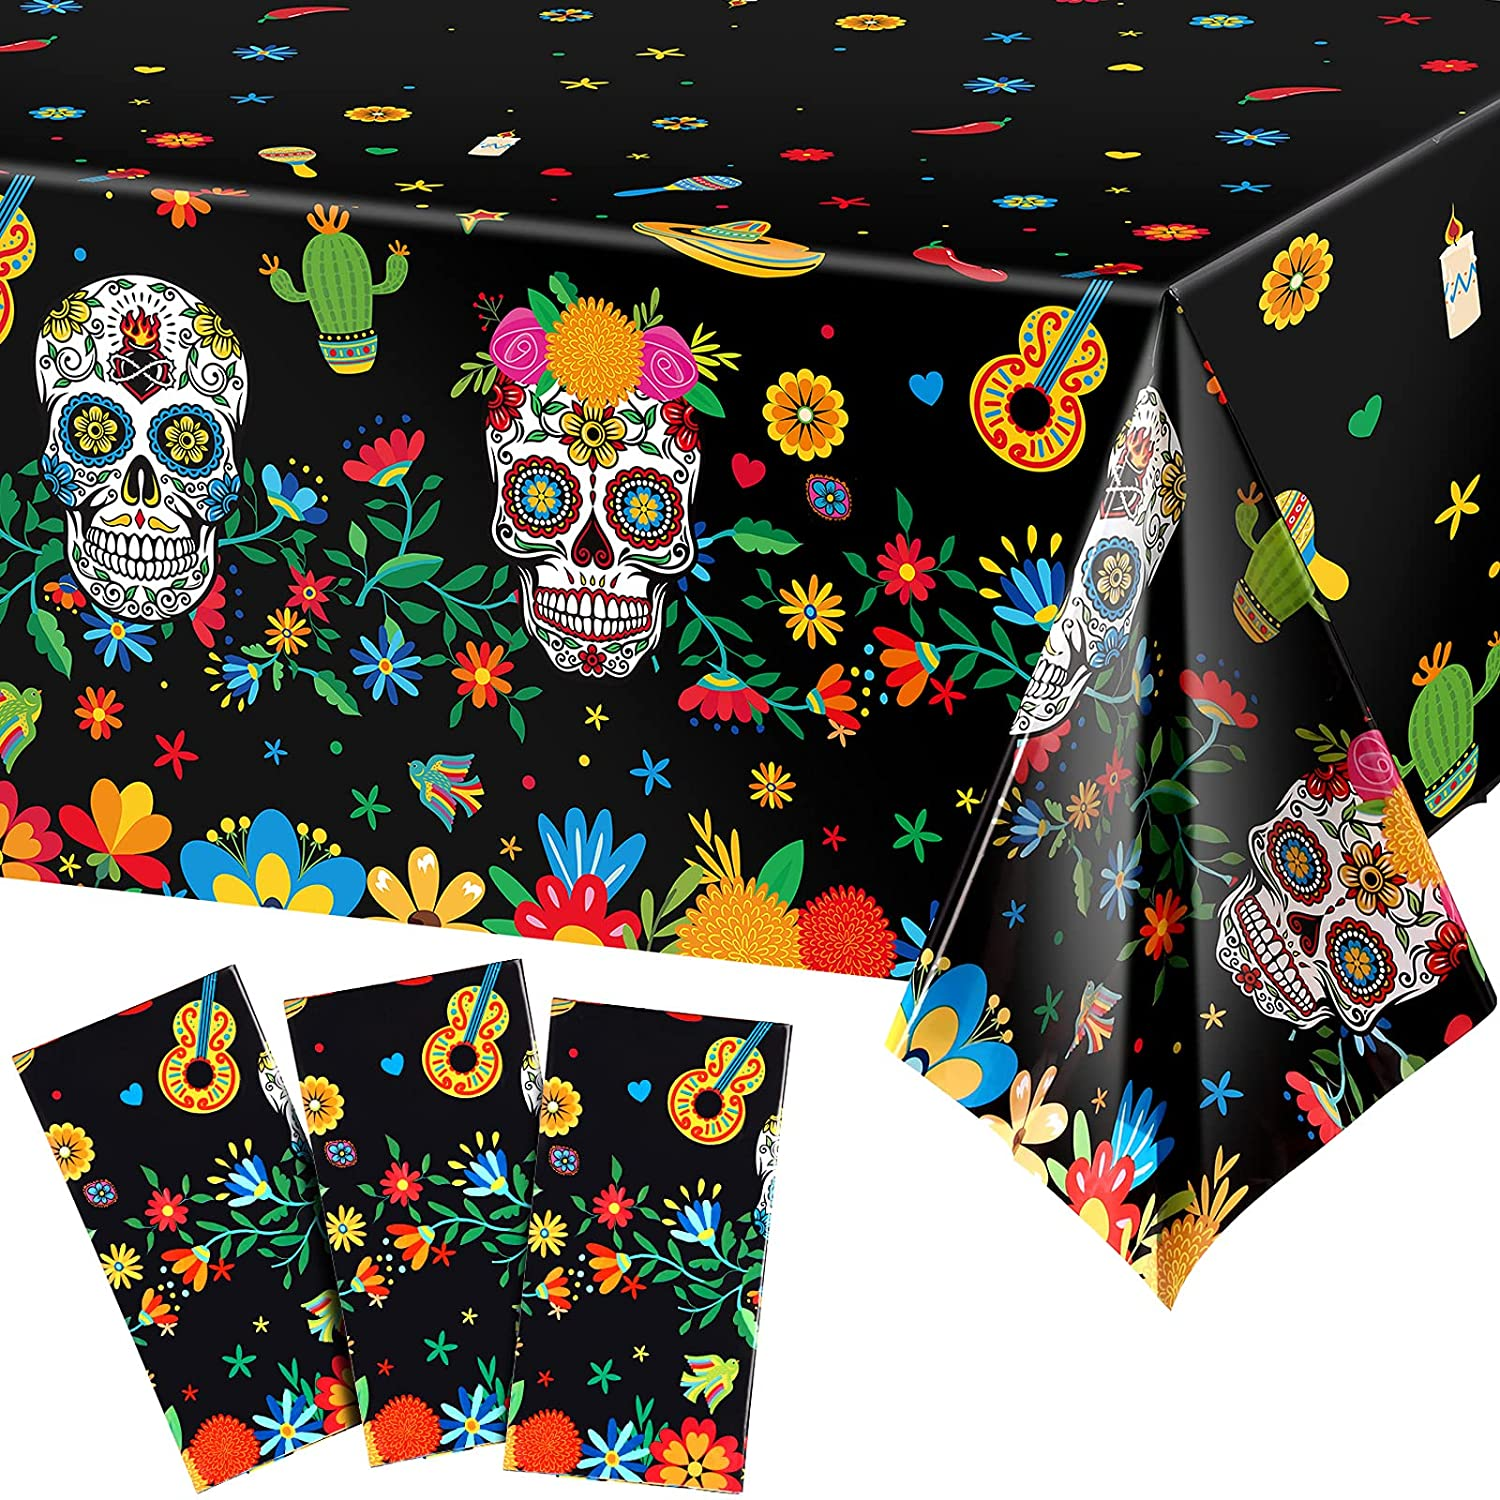 3 Pieces Day of The Dead Plastic Tablecloth Dia De Los Muertos Sugar Skull Floral Table Cloth Disposable Rectangle Table Cover for Halloween Mexican Fiesta Birthday Coco Party Supplies, 54 x 108 Inch